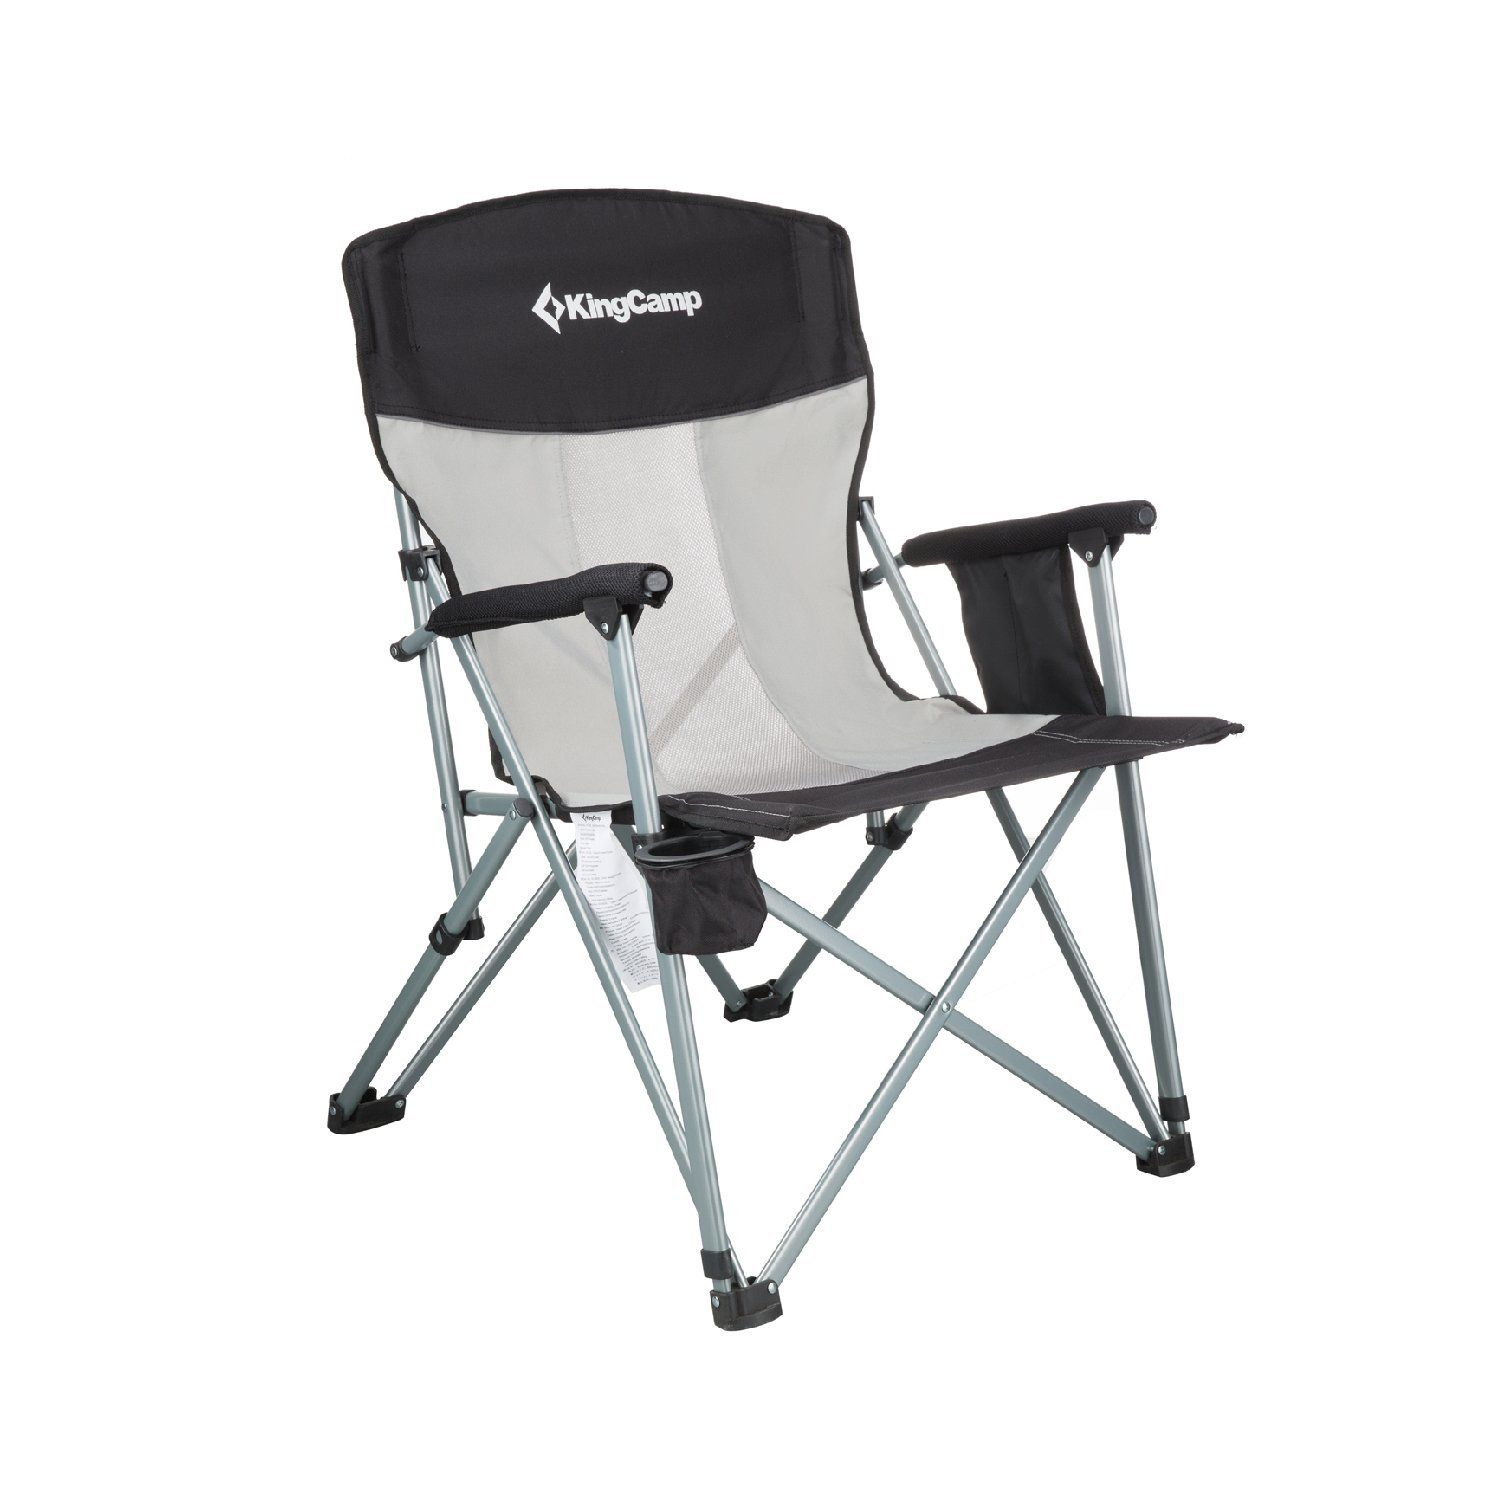 KingCamp Folding Chair Mesh Back with Cup